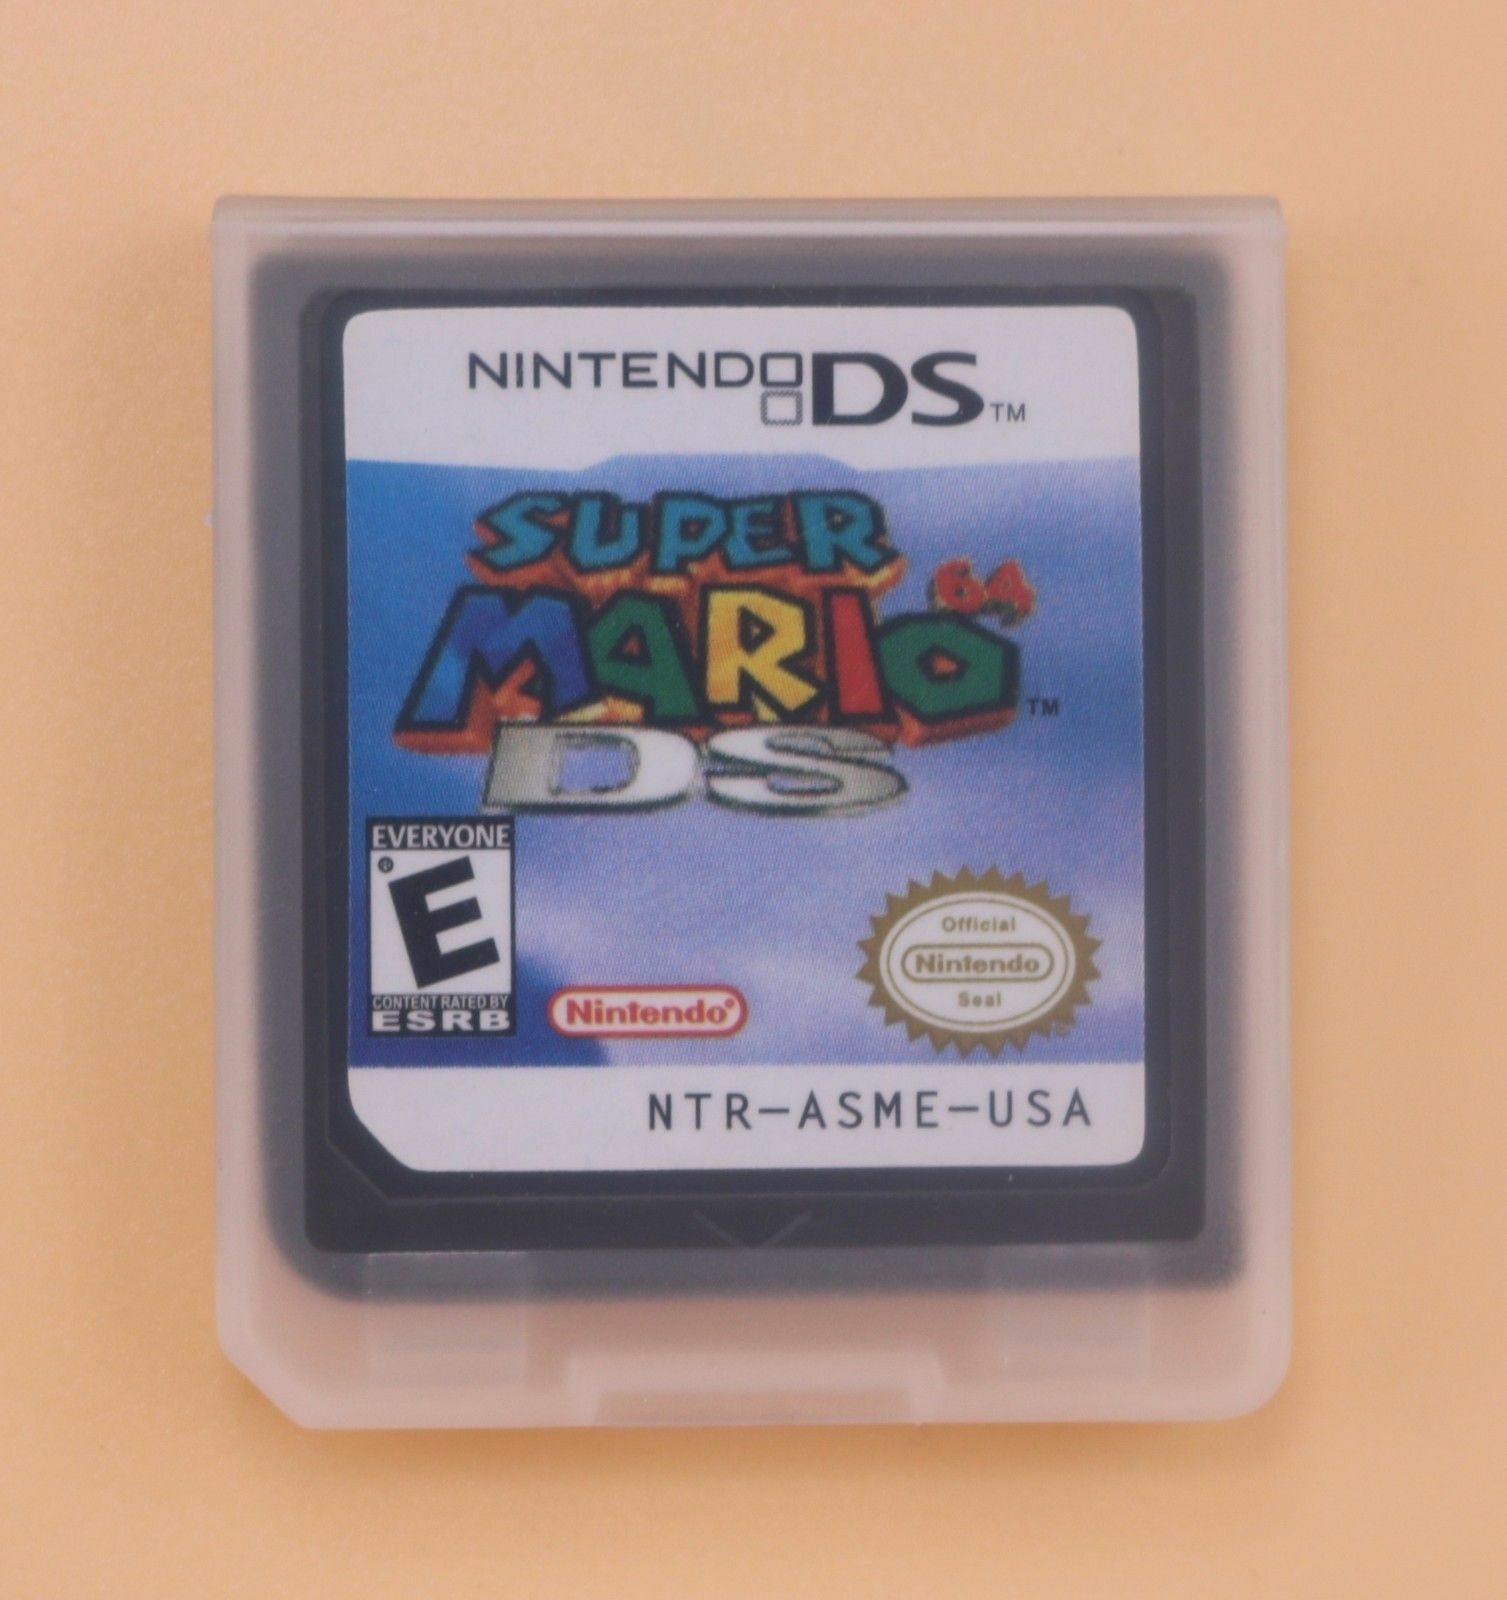 Super Mario 64 DS Game Card For Nintendo NDSL DSI DS 3DS XL